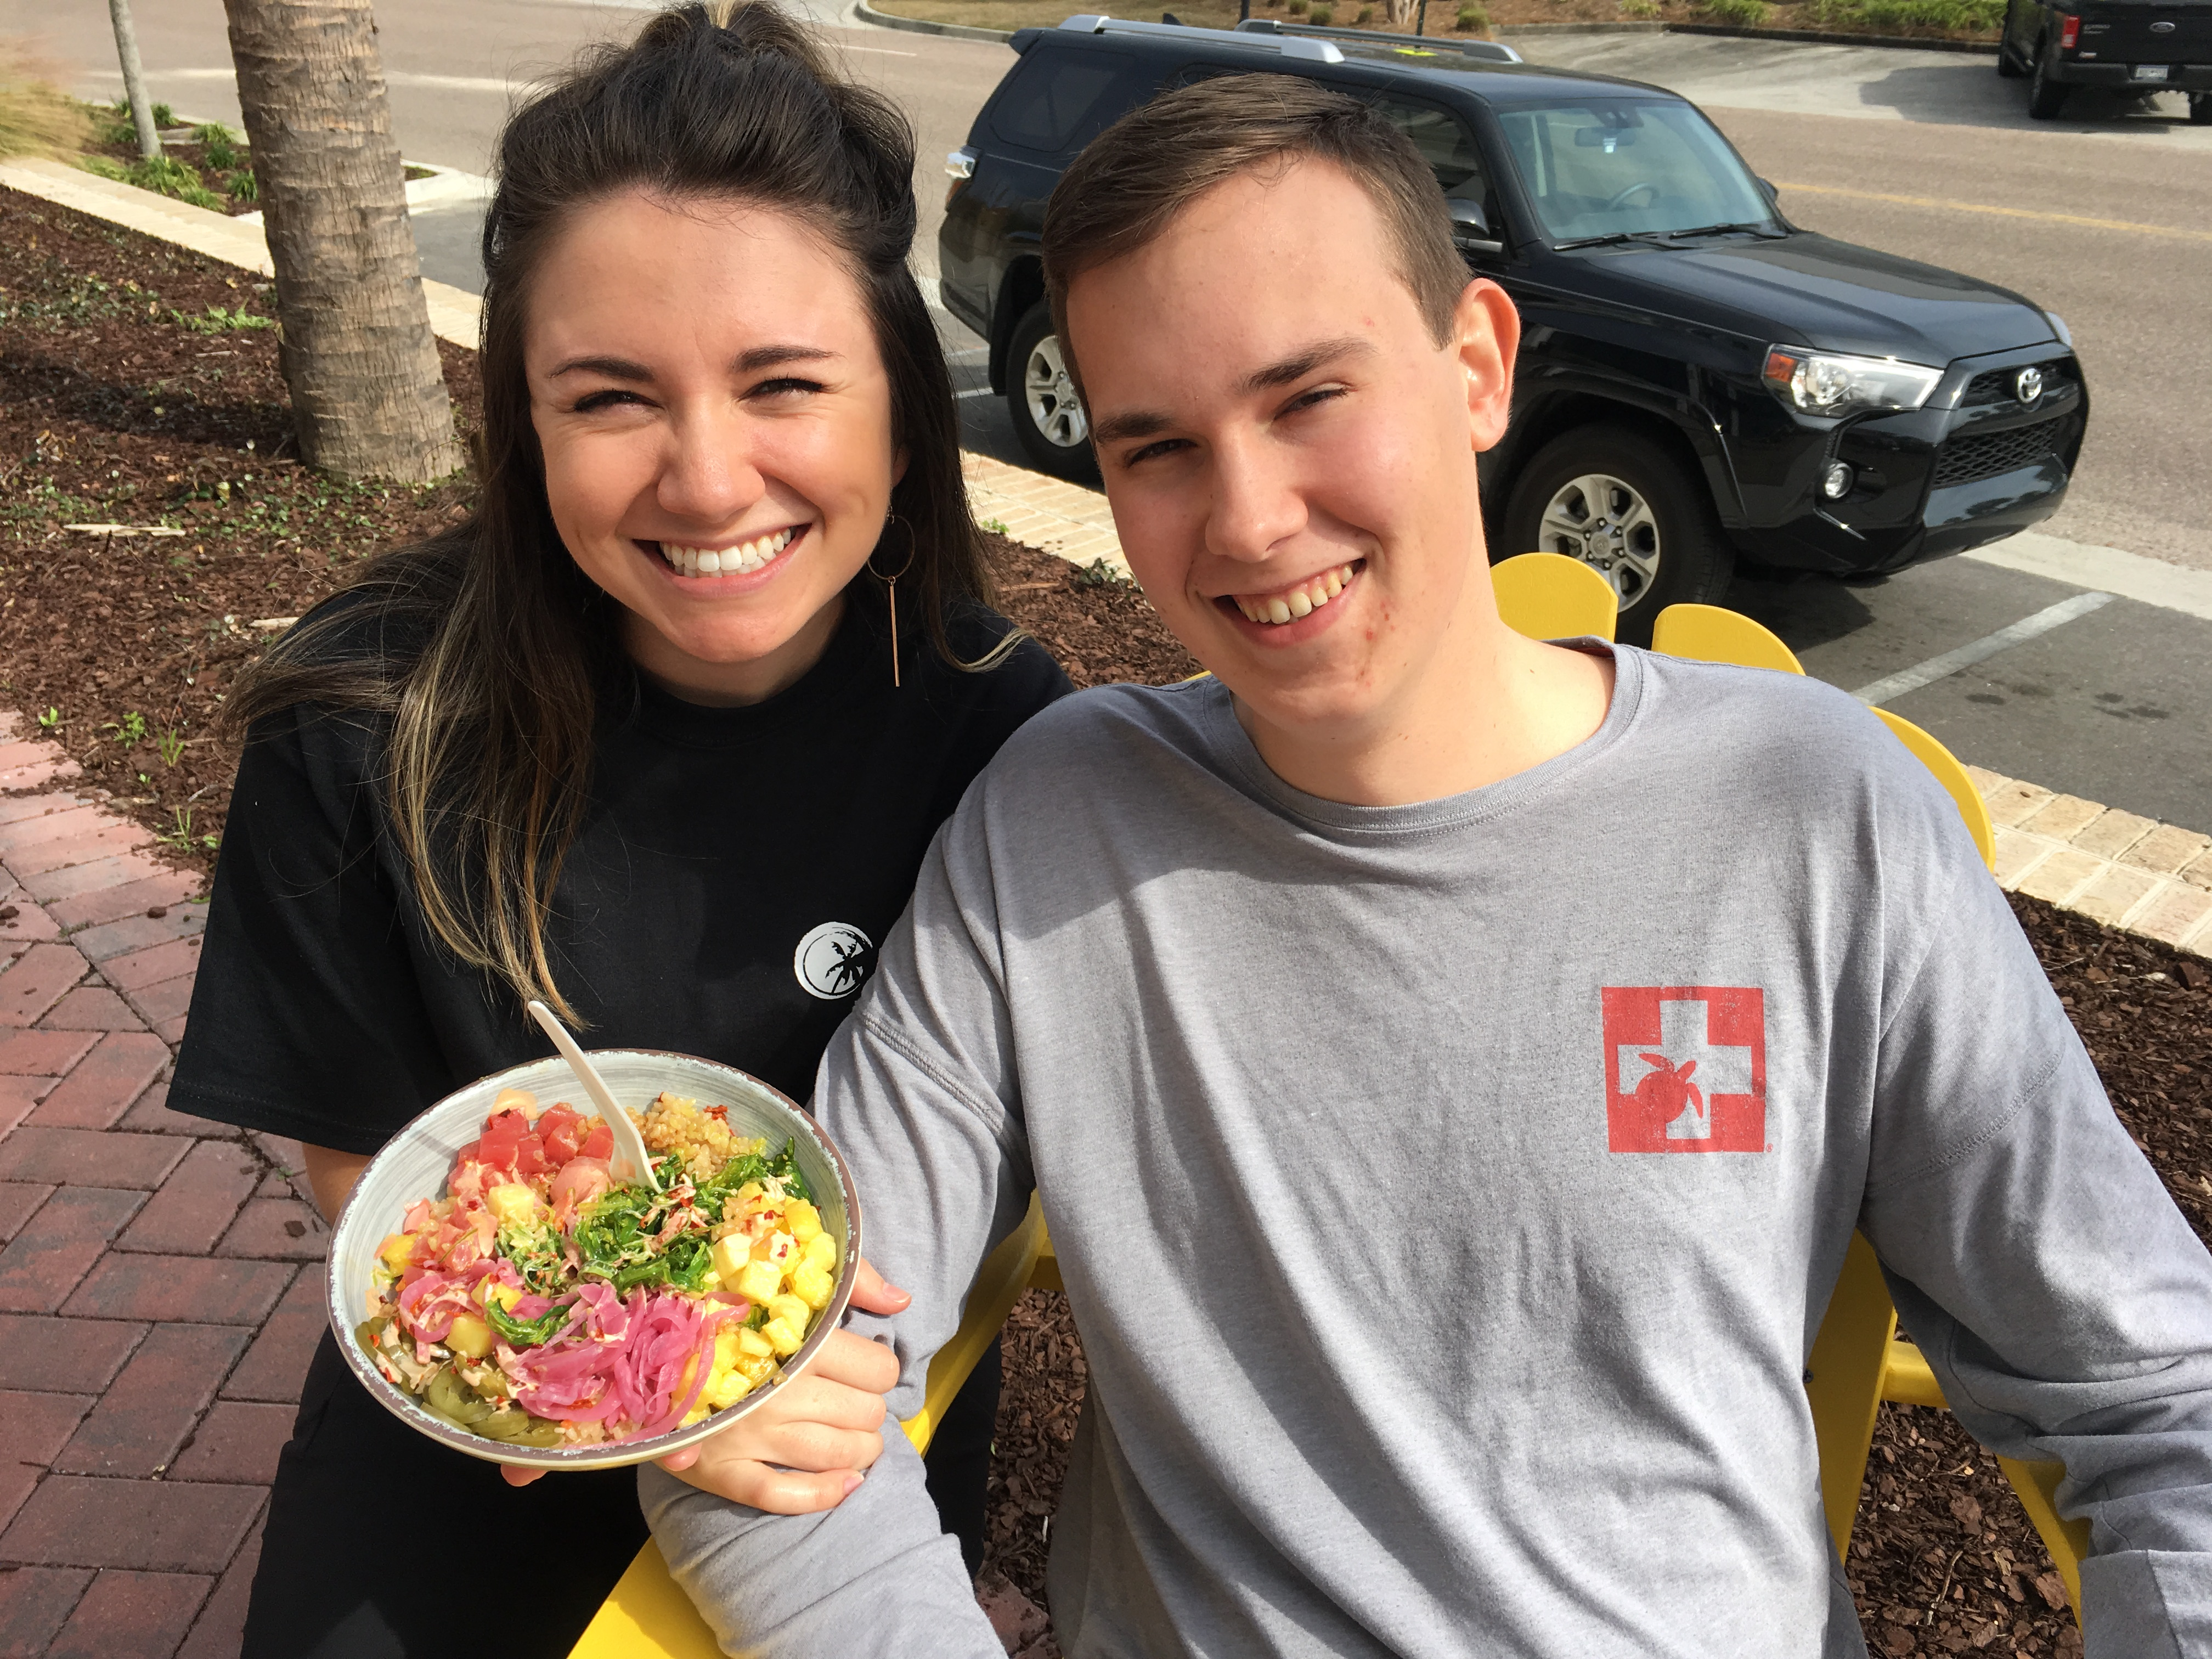 Victoria Futrell, who handles marketing for BEECH at both of their locations, enjoyed taking part in the Daniel Island store's grand opening fun last Saturday. She is pictured here with fellow attendee, Andrew Bock.